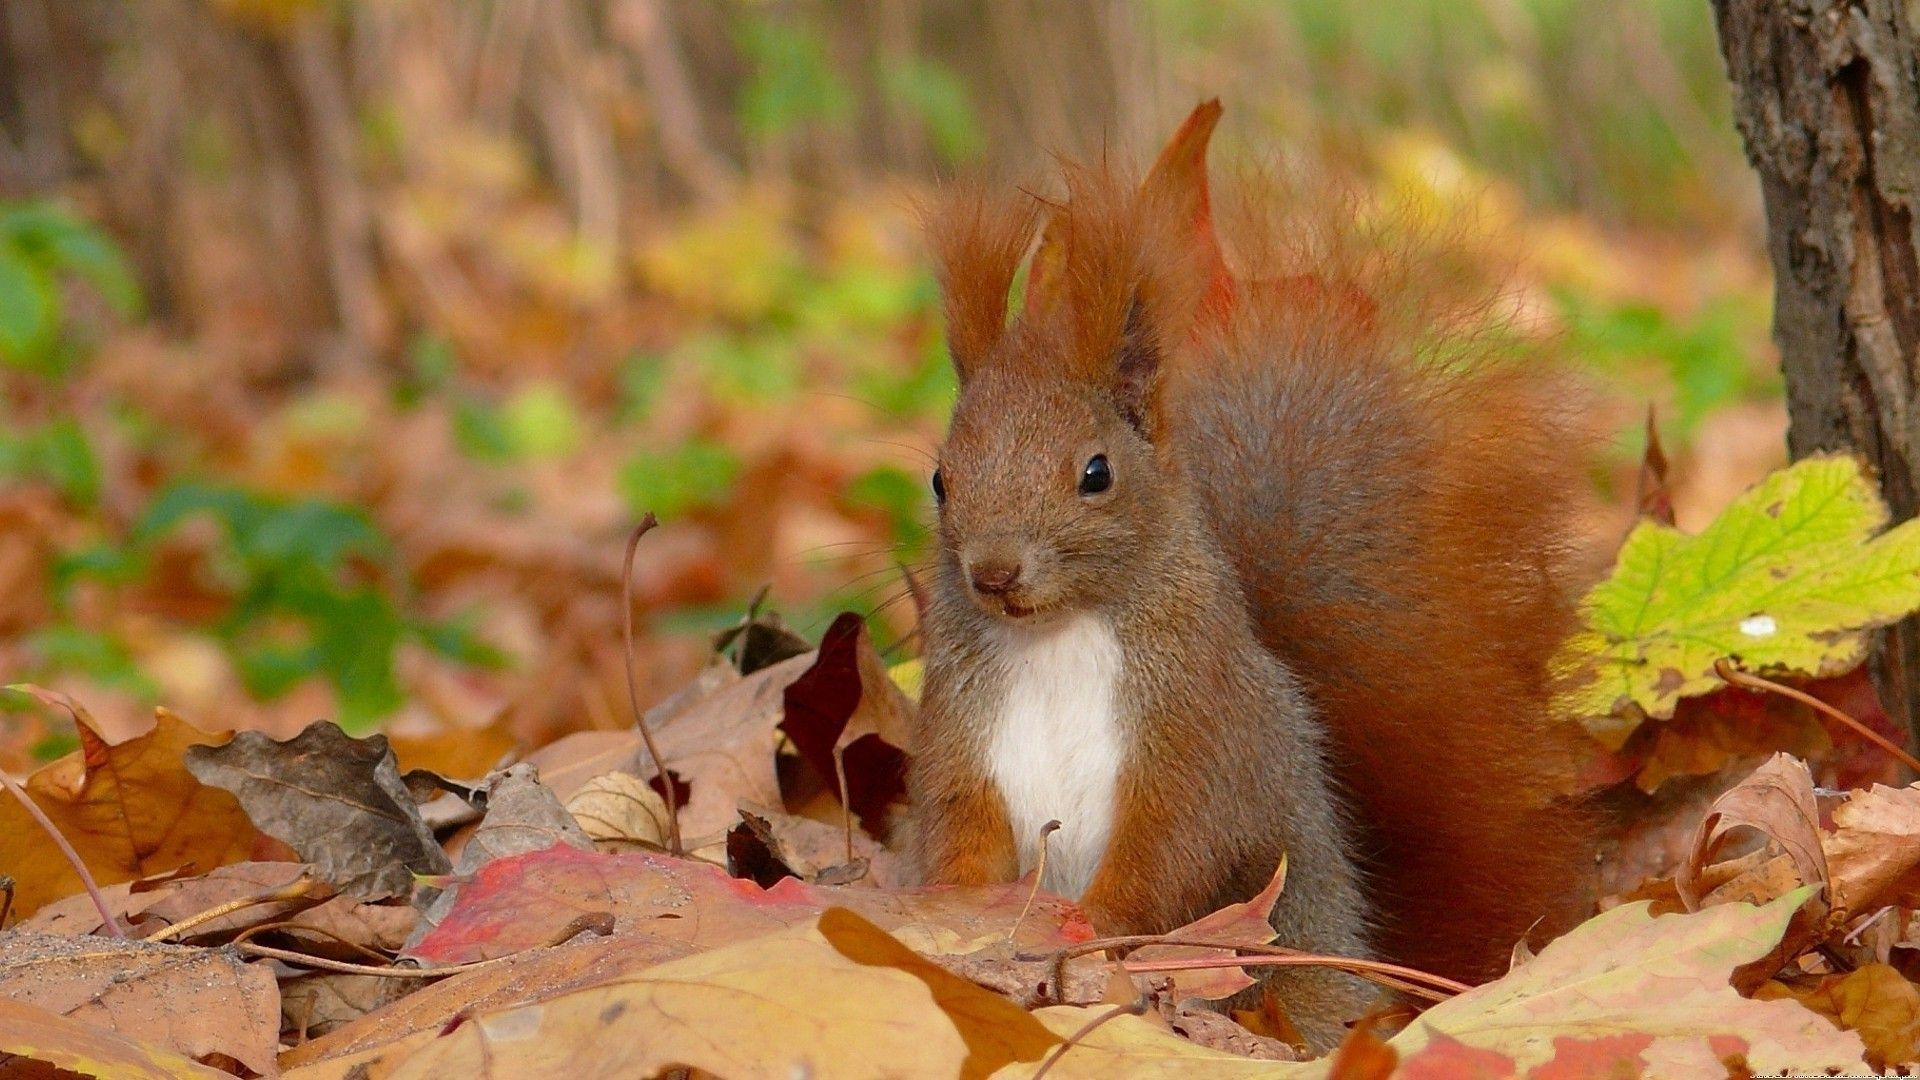 Squirrel Wallpapers #